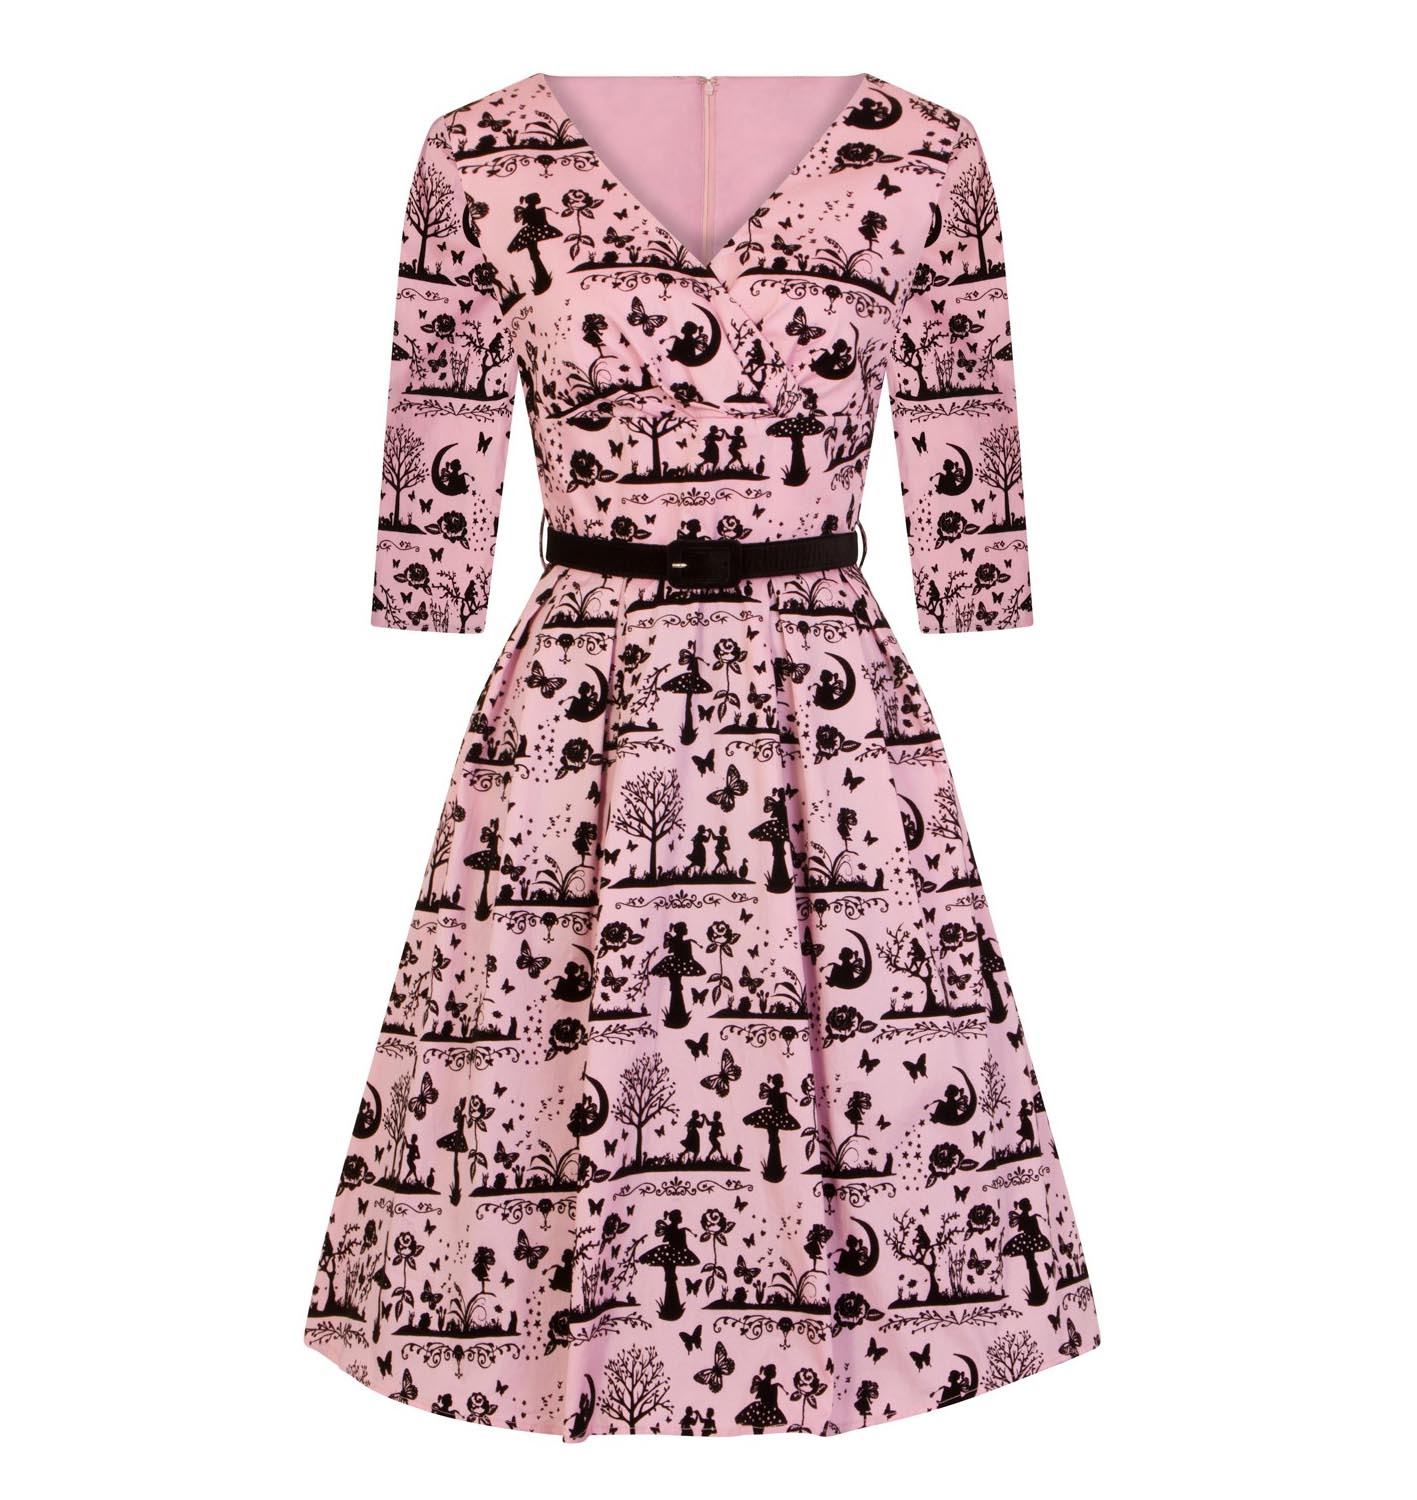 Hell-Bunny-40s-50s-Pin-Up-Dress-Fairy-Butterfly-ANDERSON-Black-Pink-All-Sizes thumbnail 23